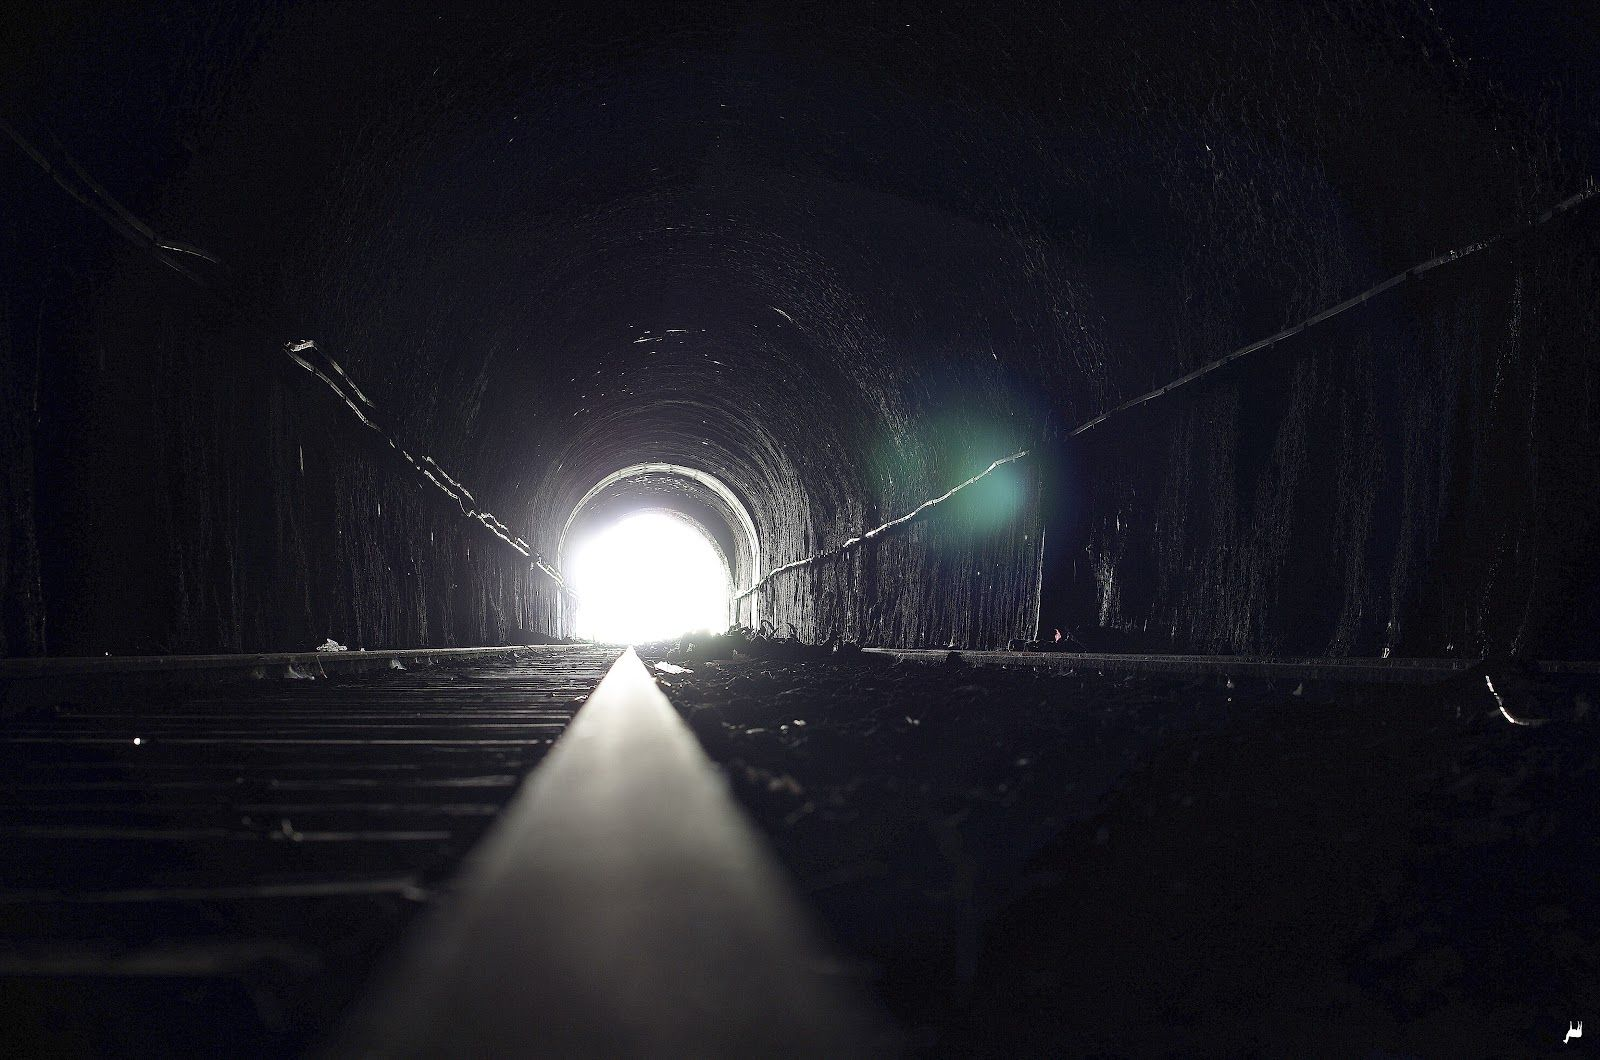 Tunnel back light